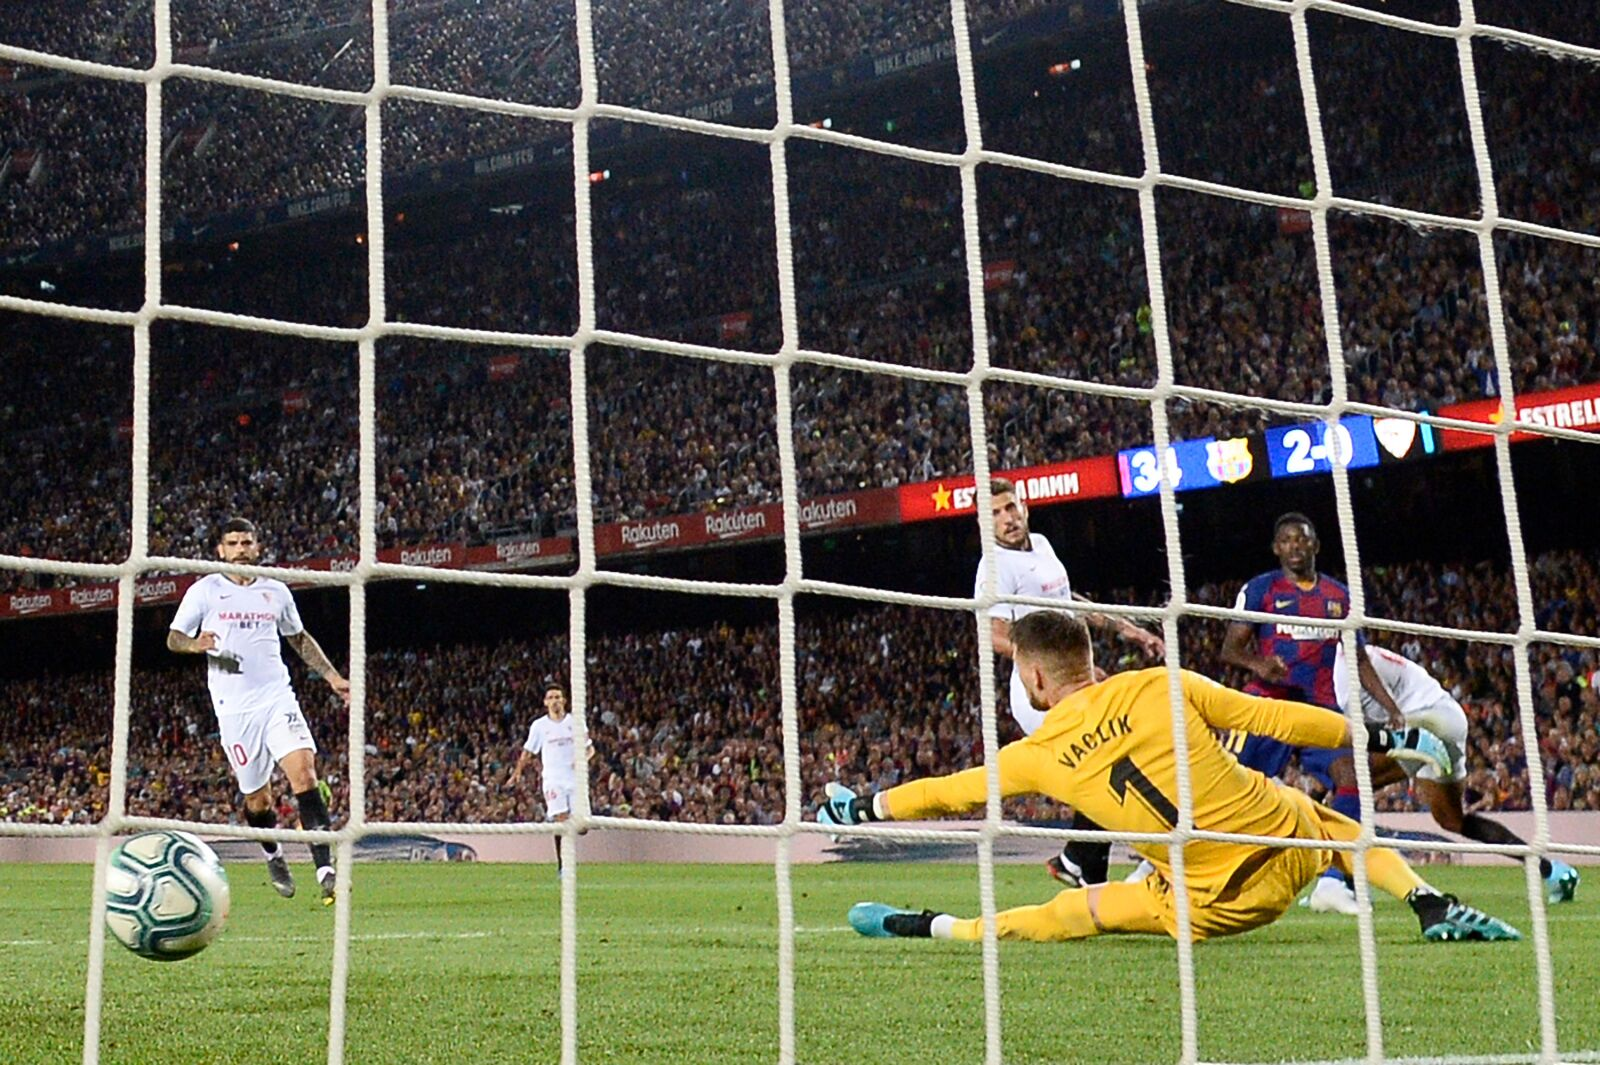 Barcelona: Quality can go far, but not the full distance